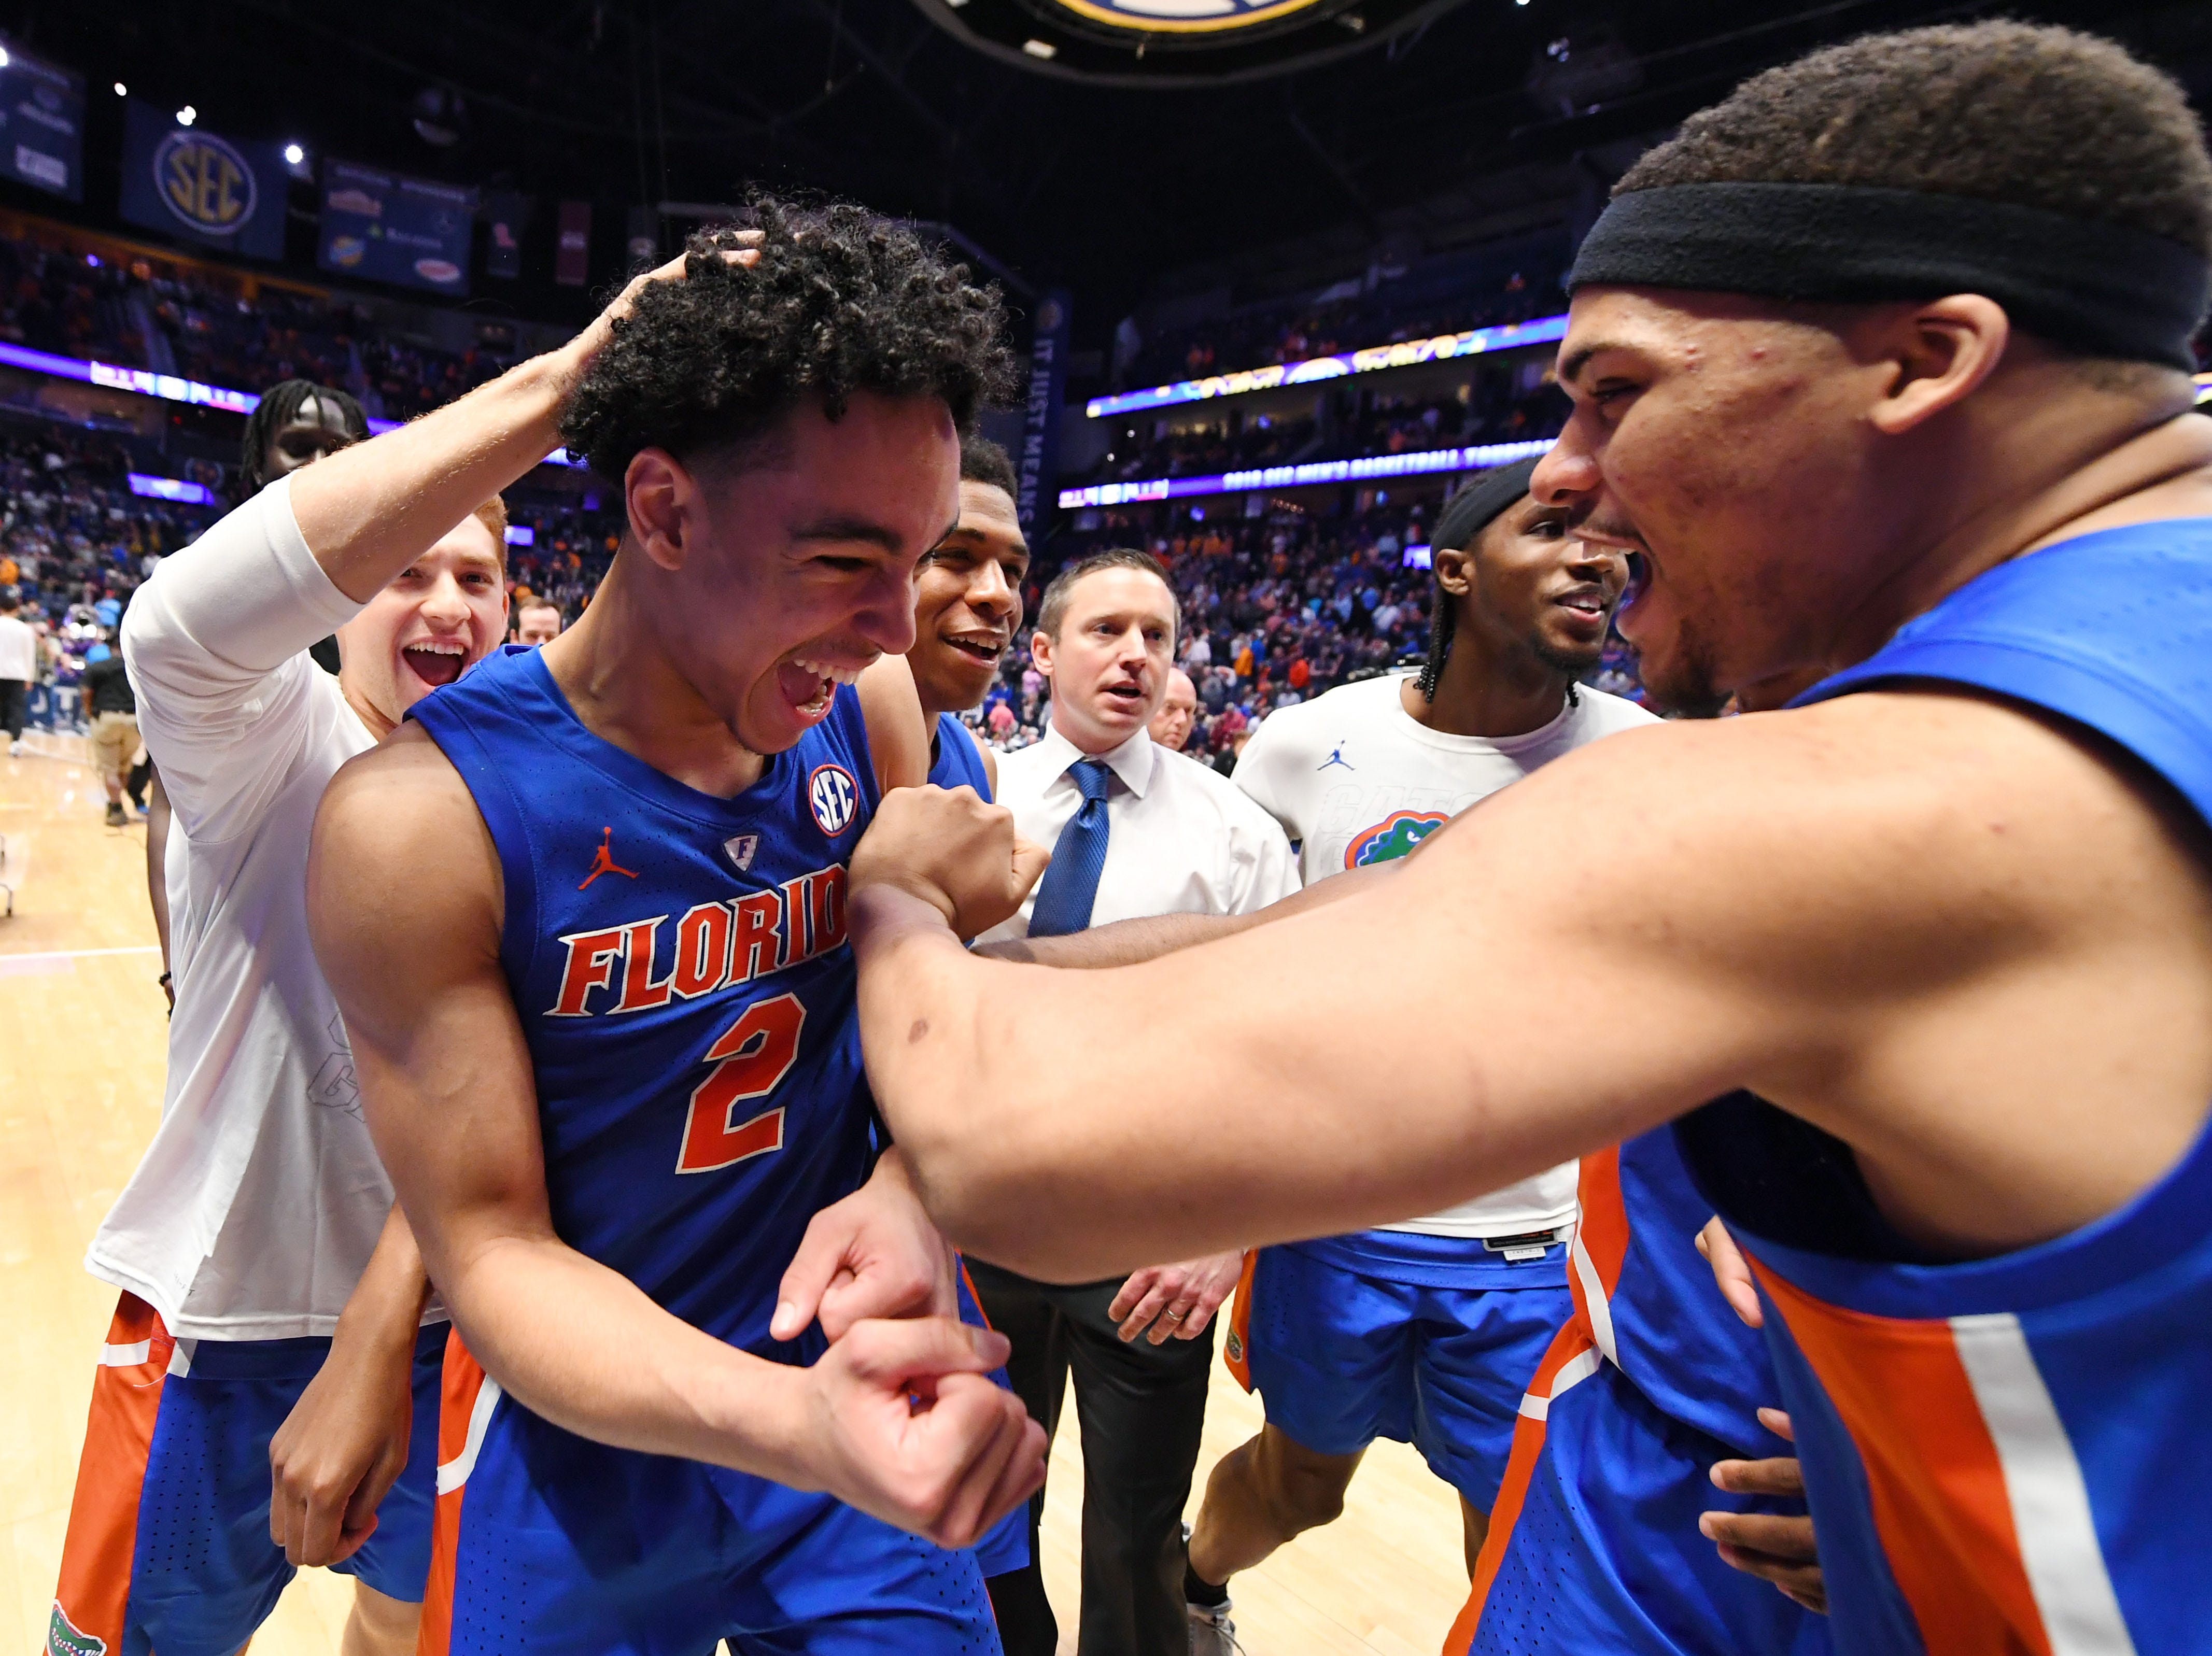 Mar 15, 2019; Nashville, TN, USA; Florida Gators guard Andrew Nembhard (2) celebrates with teammates after scoring the game basket against the LSU Tigers in the SEC conference tournament at Bridgestone Arena. Mandatory Credit: Christopher Hanewinckel-USA TODAY Sports